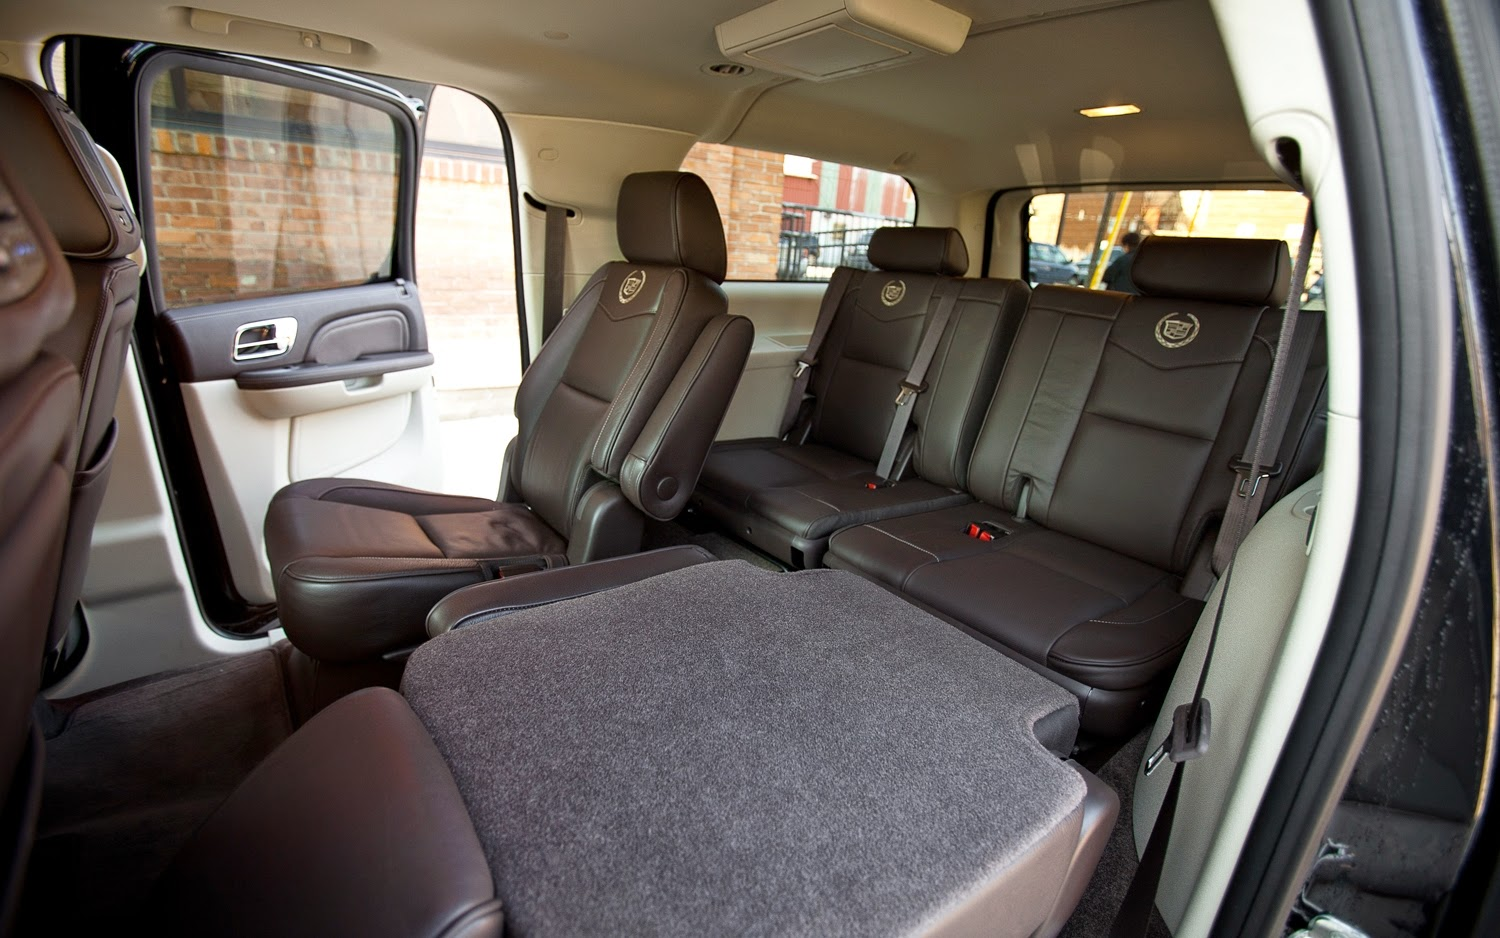 To further convey the feel of luxury, the ESV comes with a variety of optional features. Options include: 22-inch chrome wheels, sunroof, multilevel cooling for the front seats, and a heated power-tilting steering wheel. The ESV does not come with the option of fold flat third row seats like the original, but the seats are removable. When removed, the ESV provides 90 cubic ft. of cargo space and with the fold and flip second row compacted, maximum capacity is 137 cubic ft. With all the seats in place, there is still 46 cubic ft. available in this extended length Escalade.